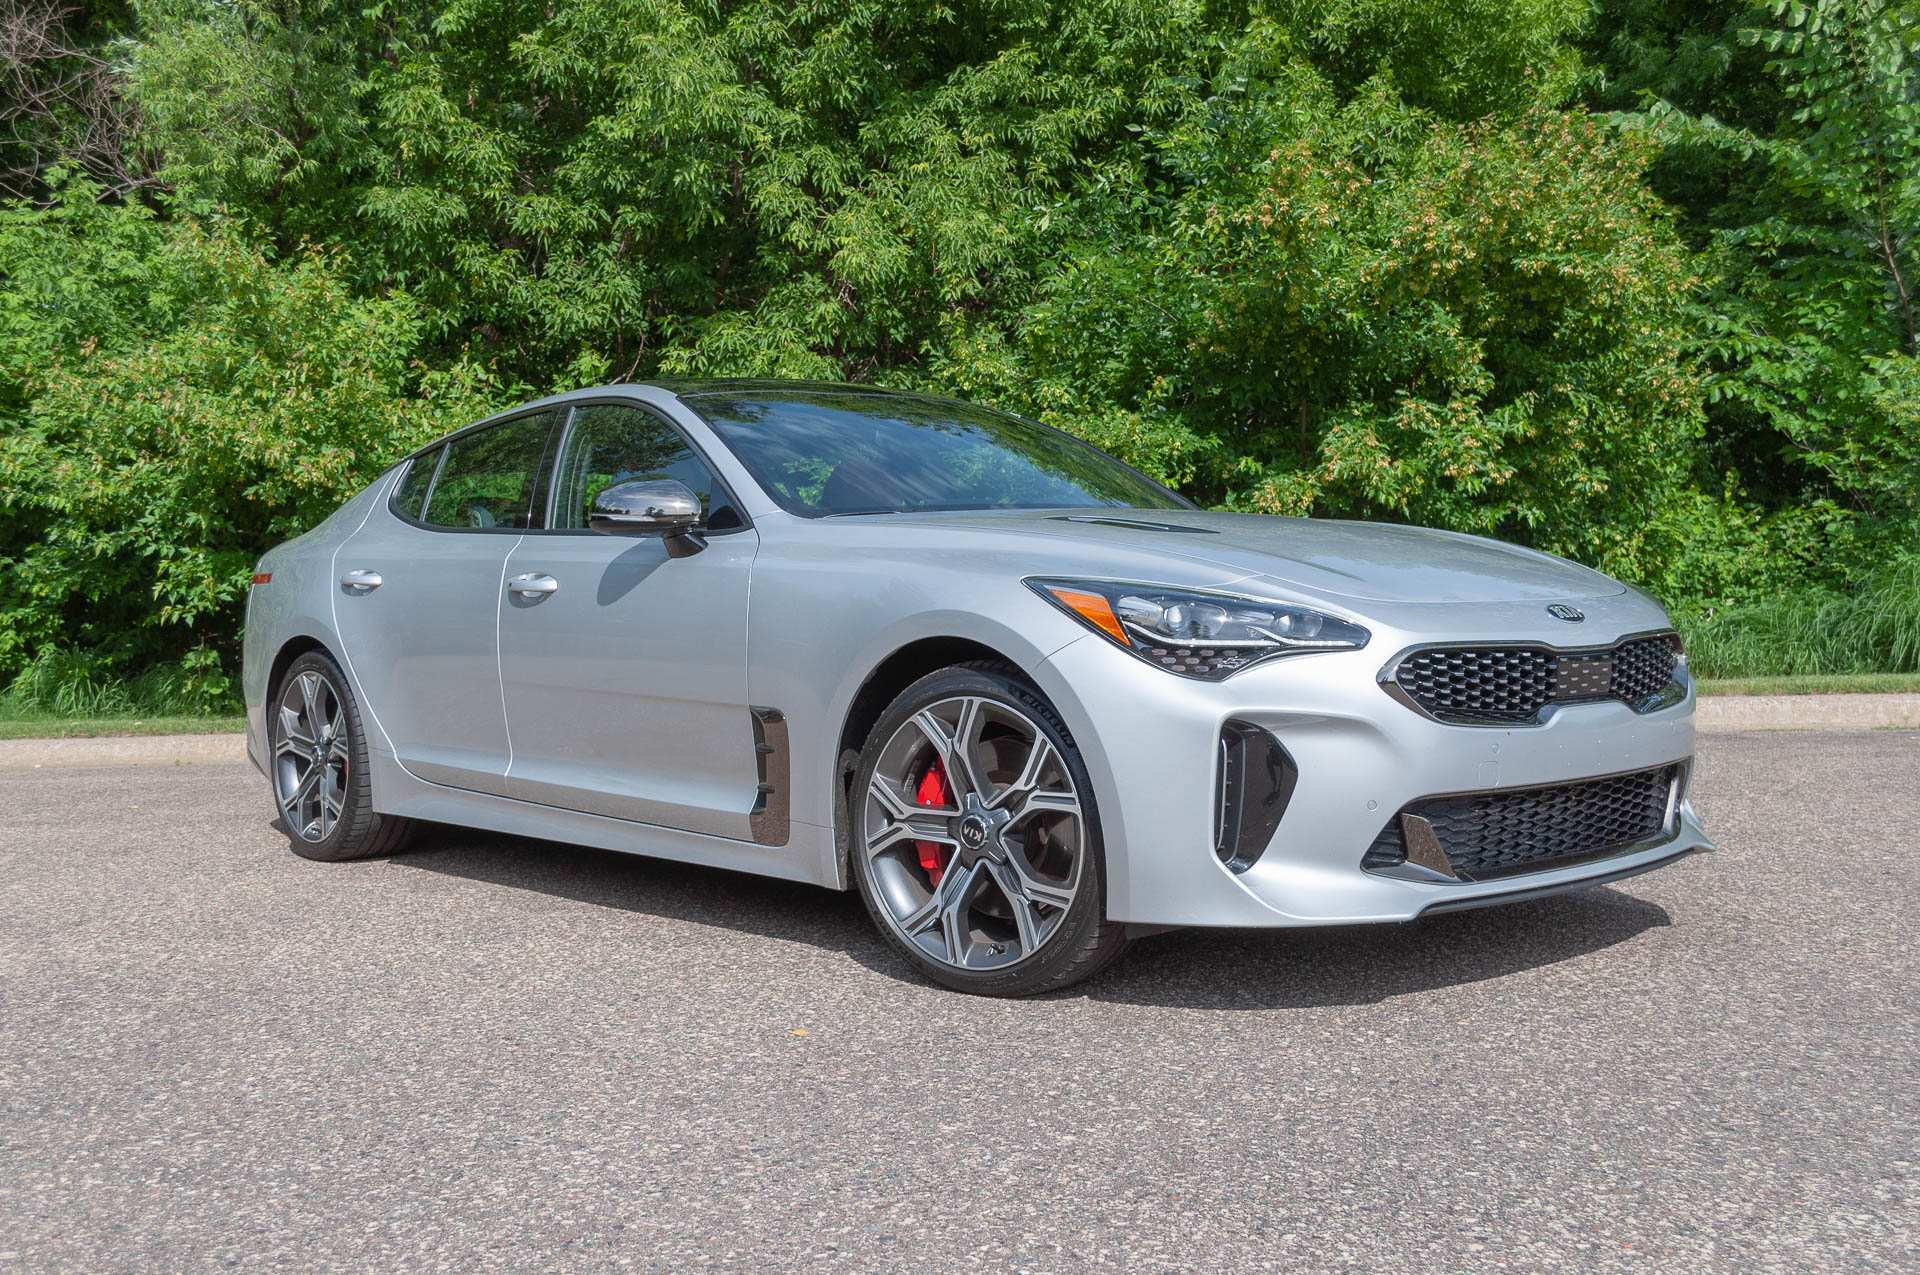 34 All New 2019 Kia Stinger Gt2 Review